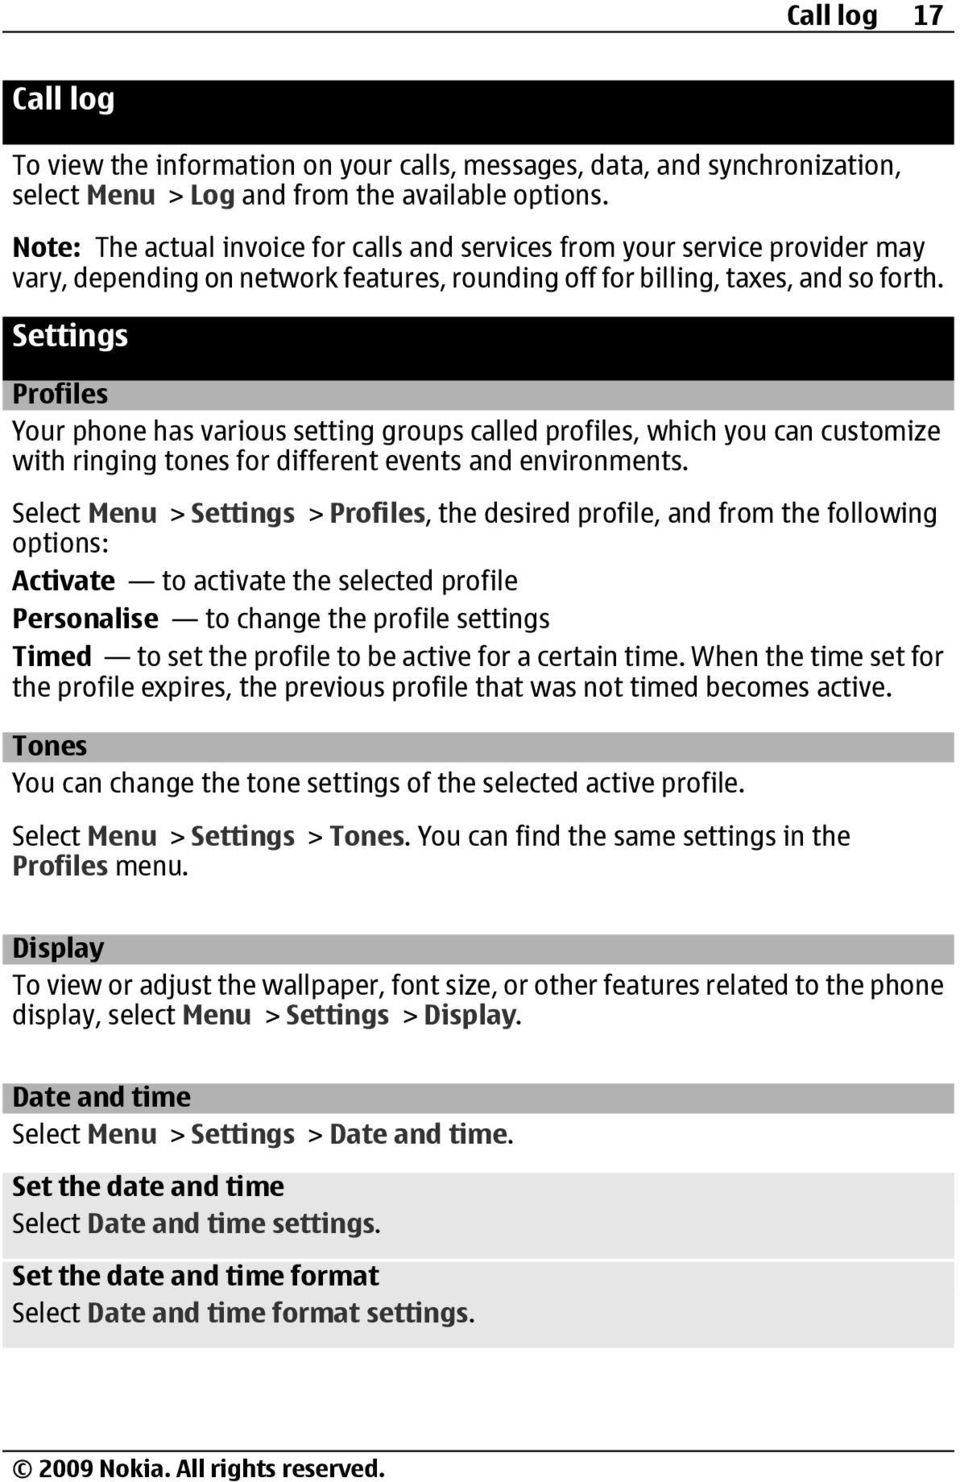 Settings Profiles Your phone has various setting groups called profiles, which you can customize with ringing tones for different events and environments.